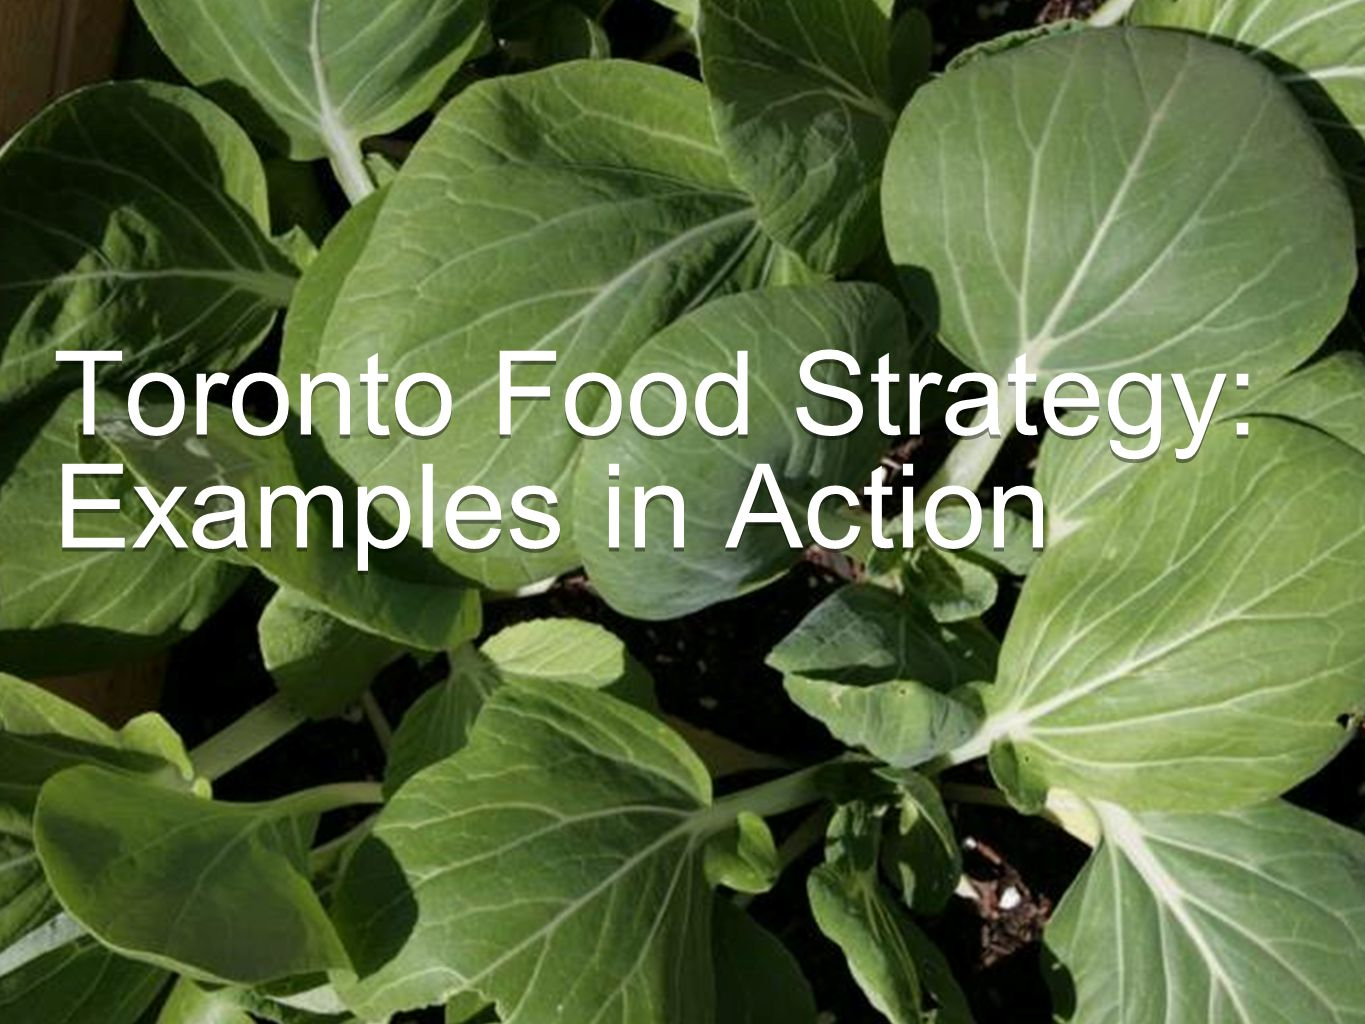 Toronto Food Strategy: Examples in Action